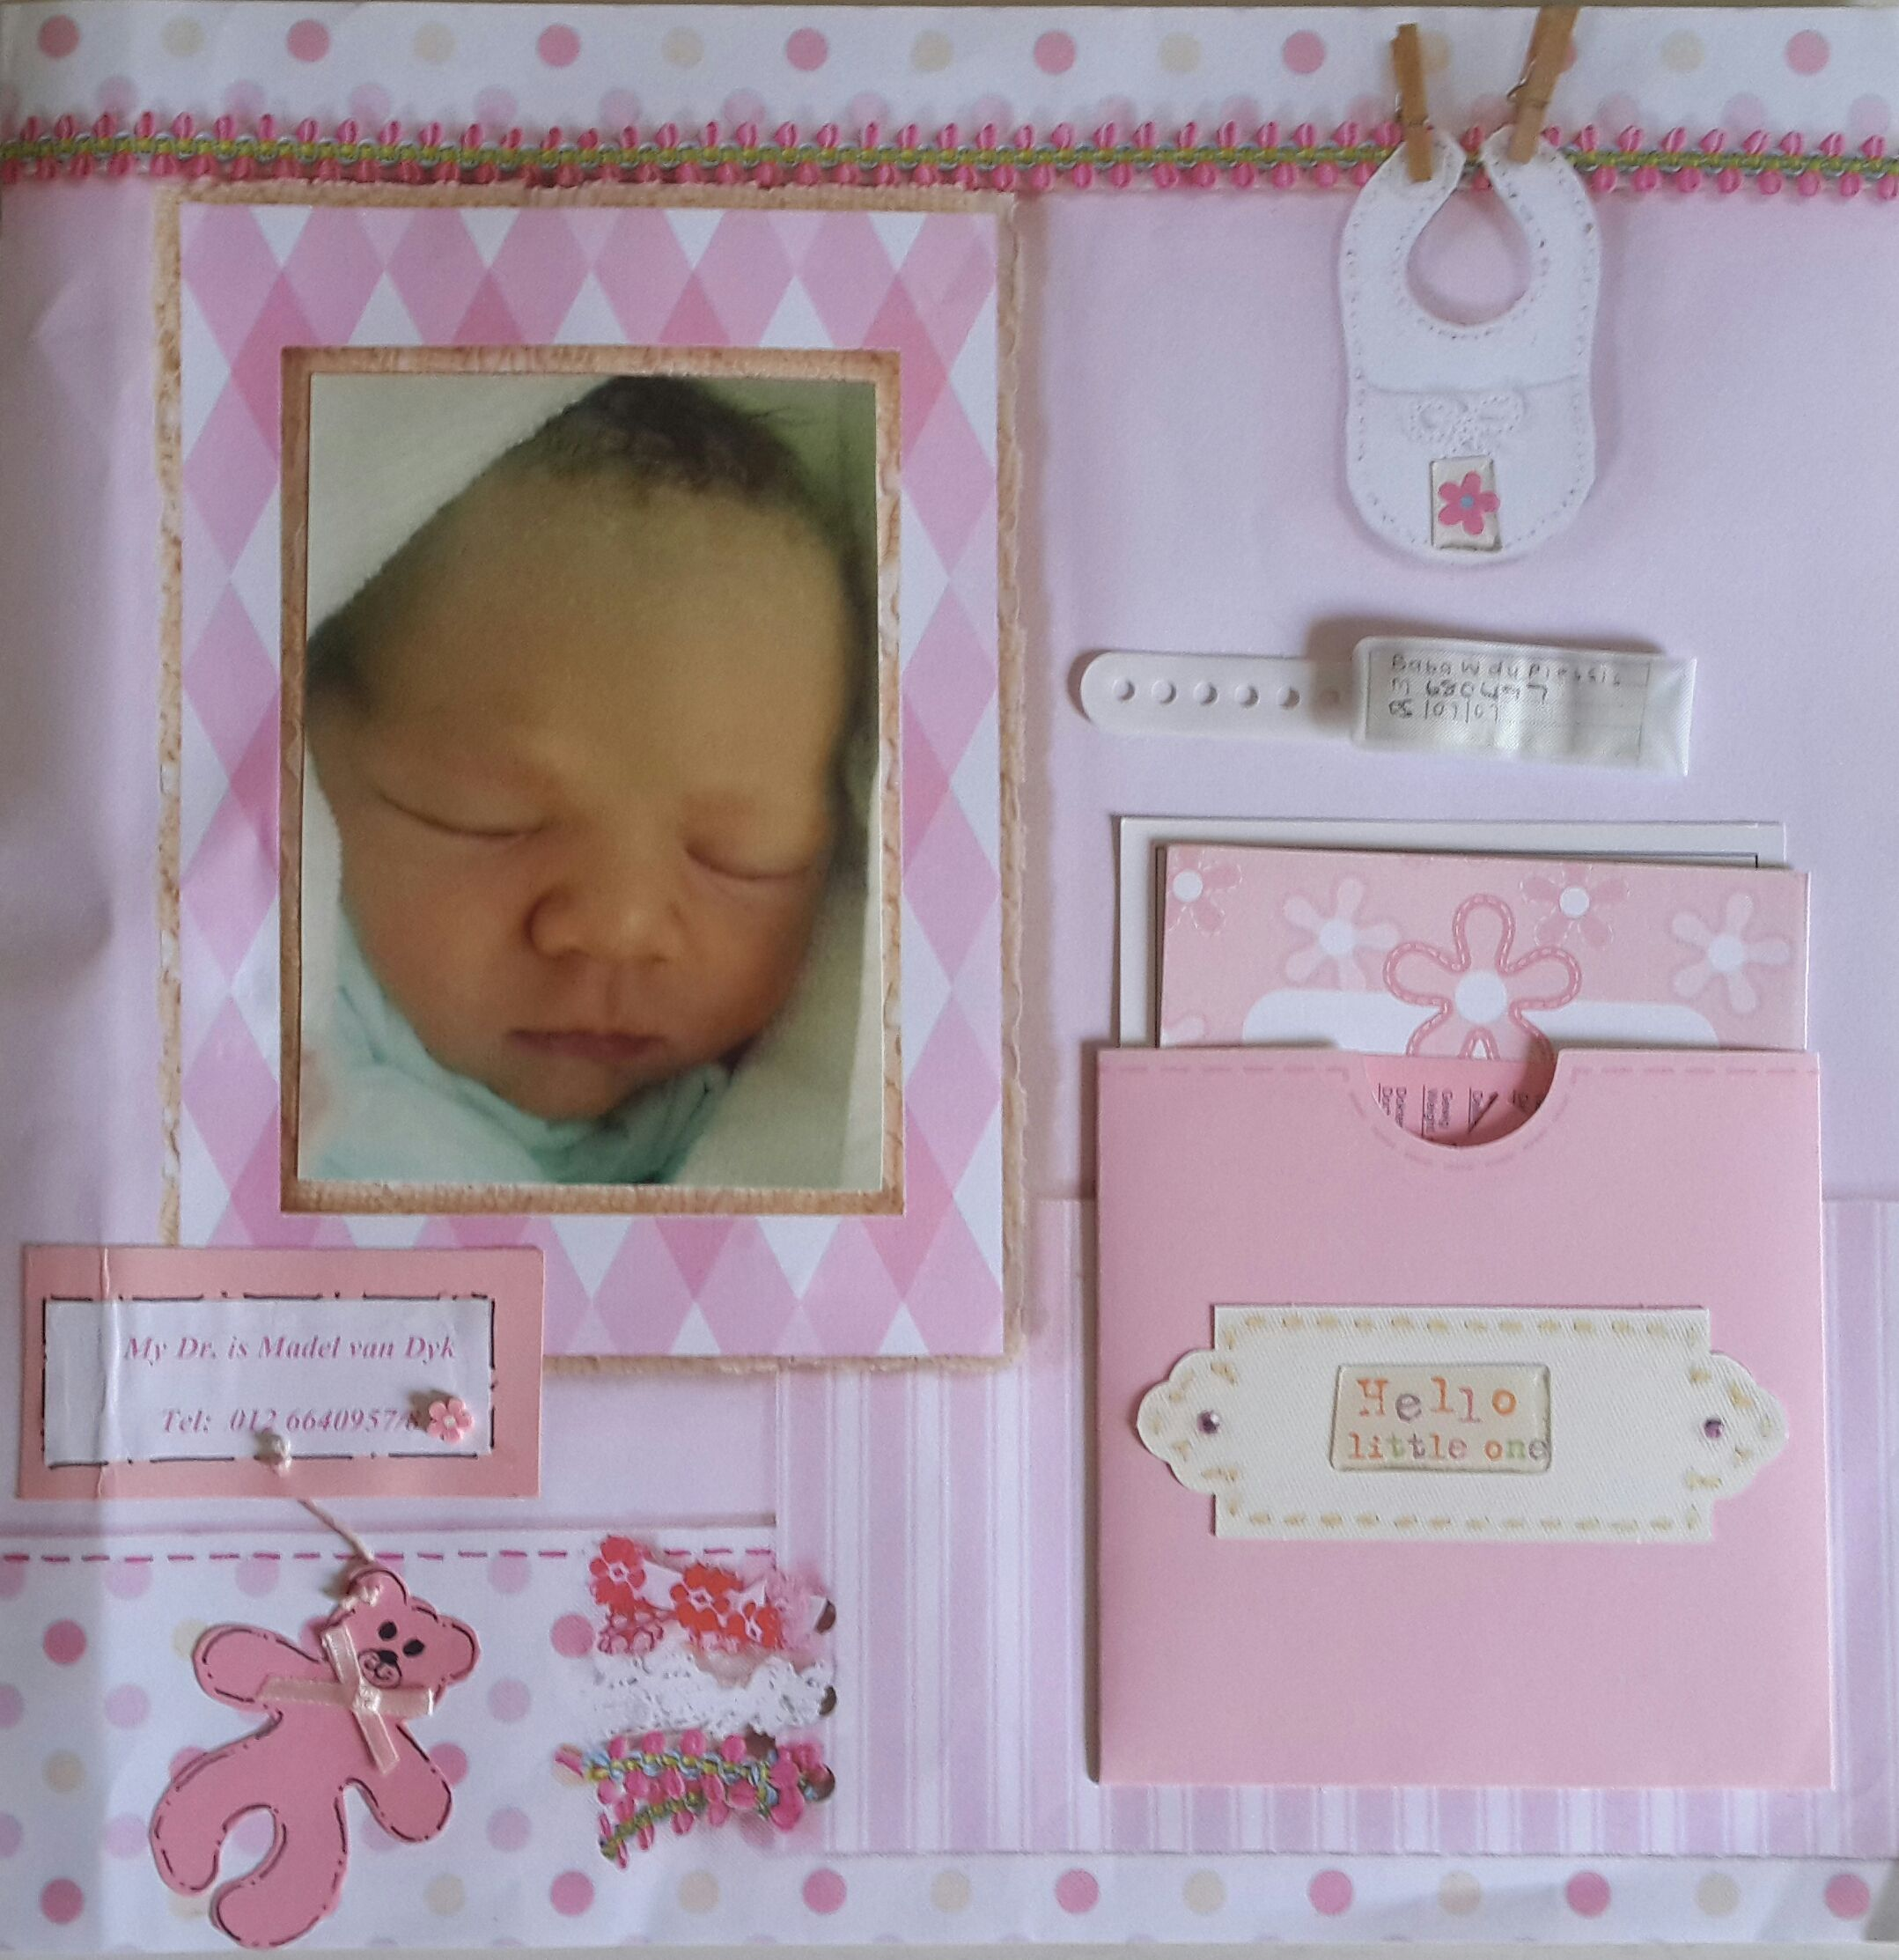 Baby girl birth layout page layouts pinterest scrapbook birth and layouts - Scrapbooking idees pages ...